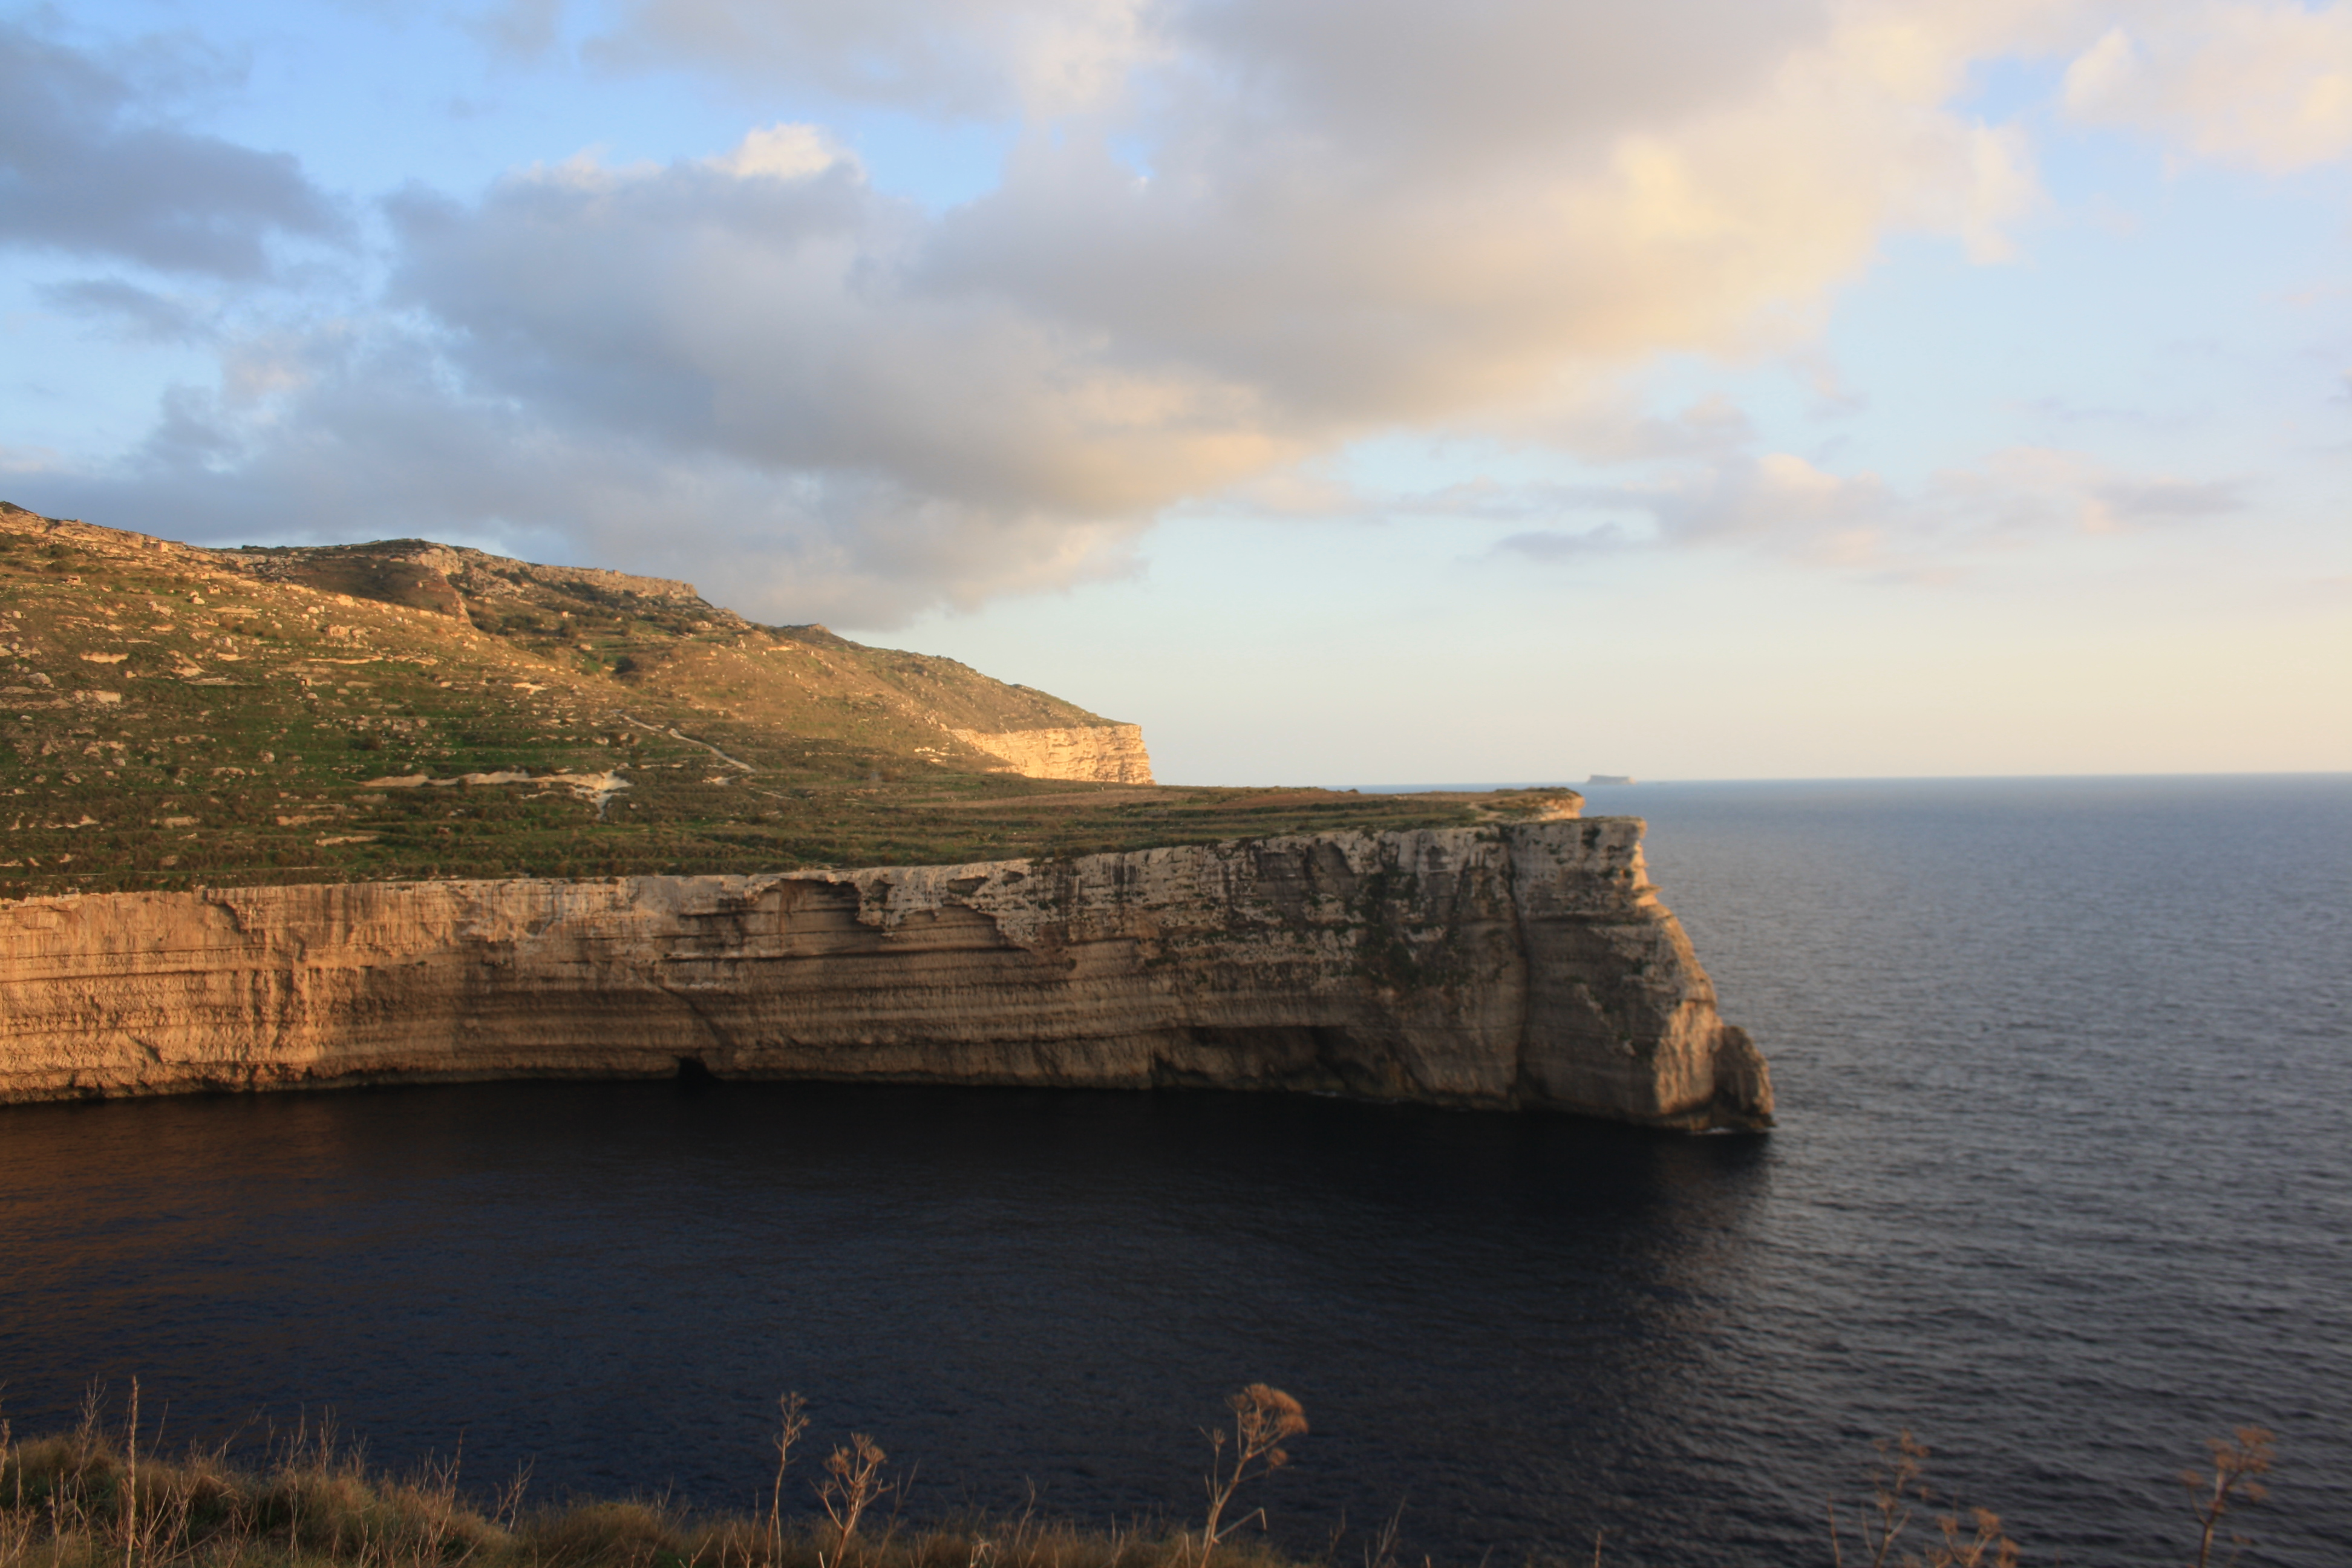 Dingli clifts in Malta Vacanza 2018 GetCOO travel